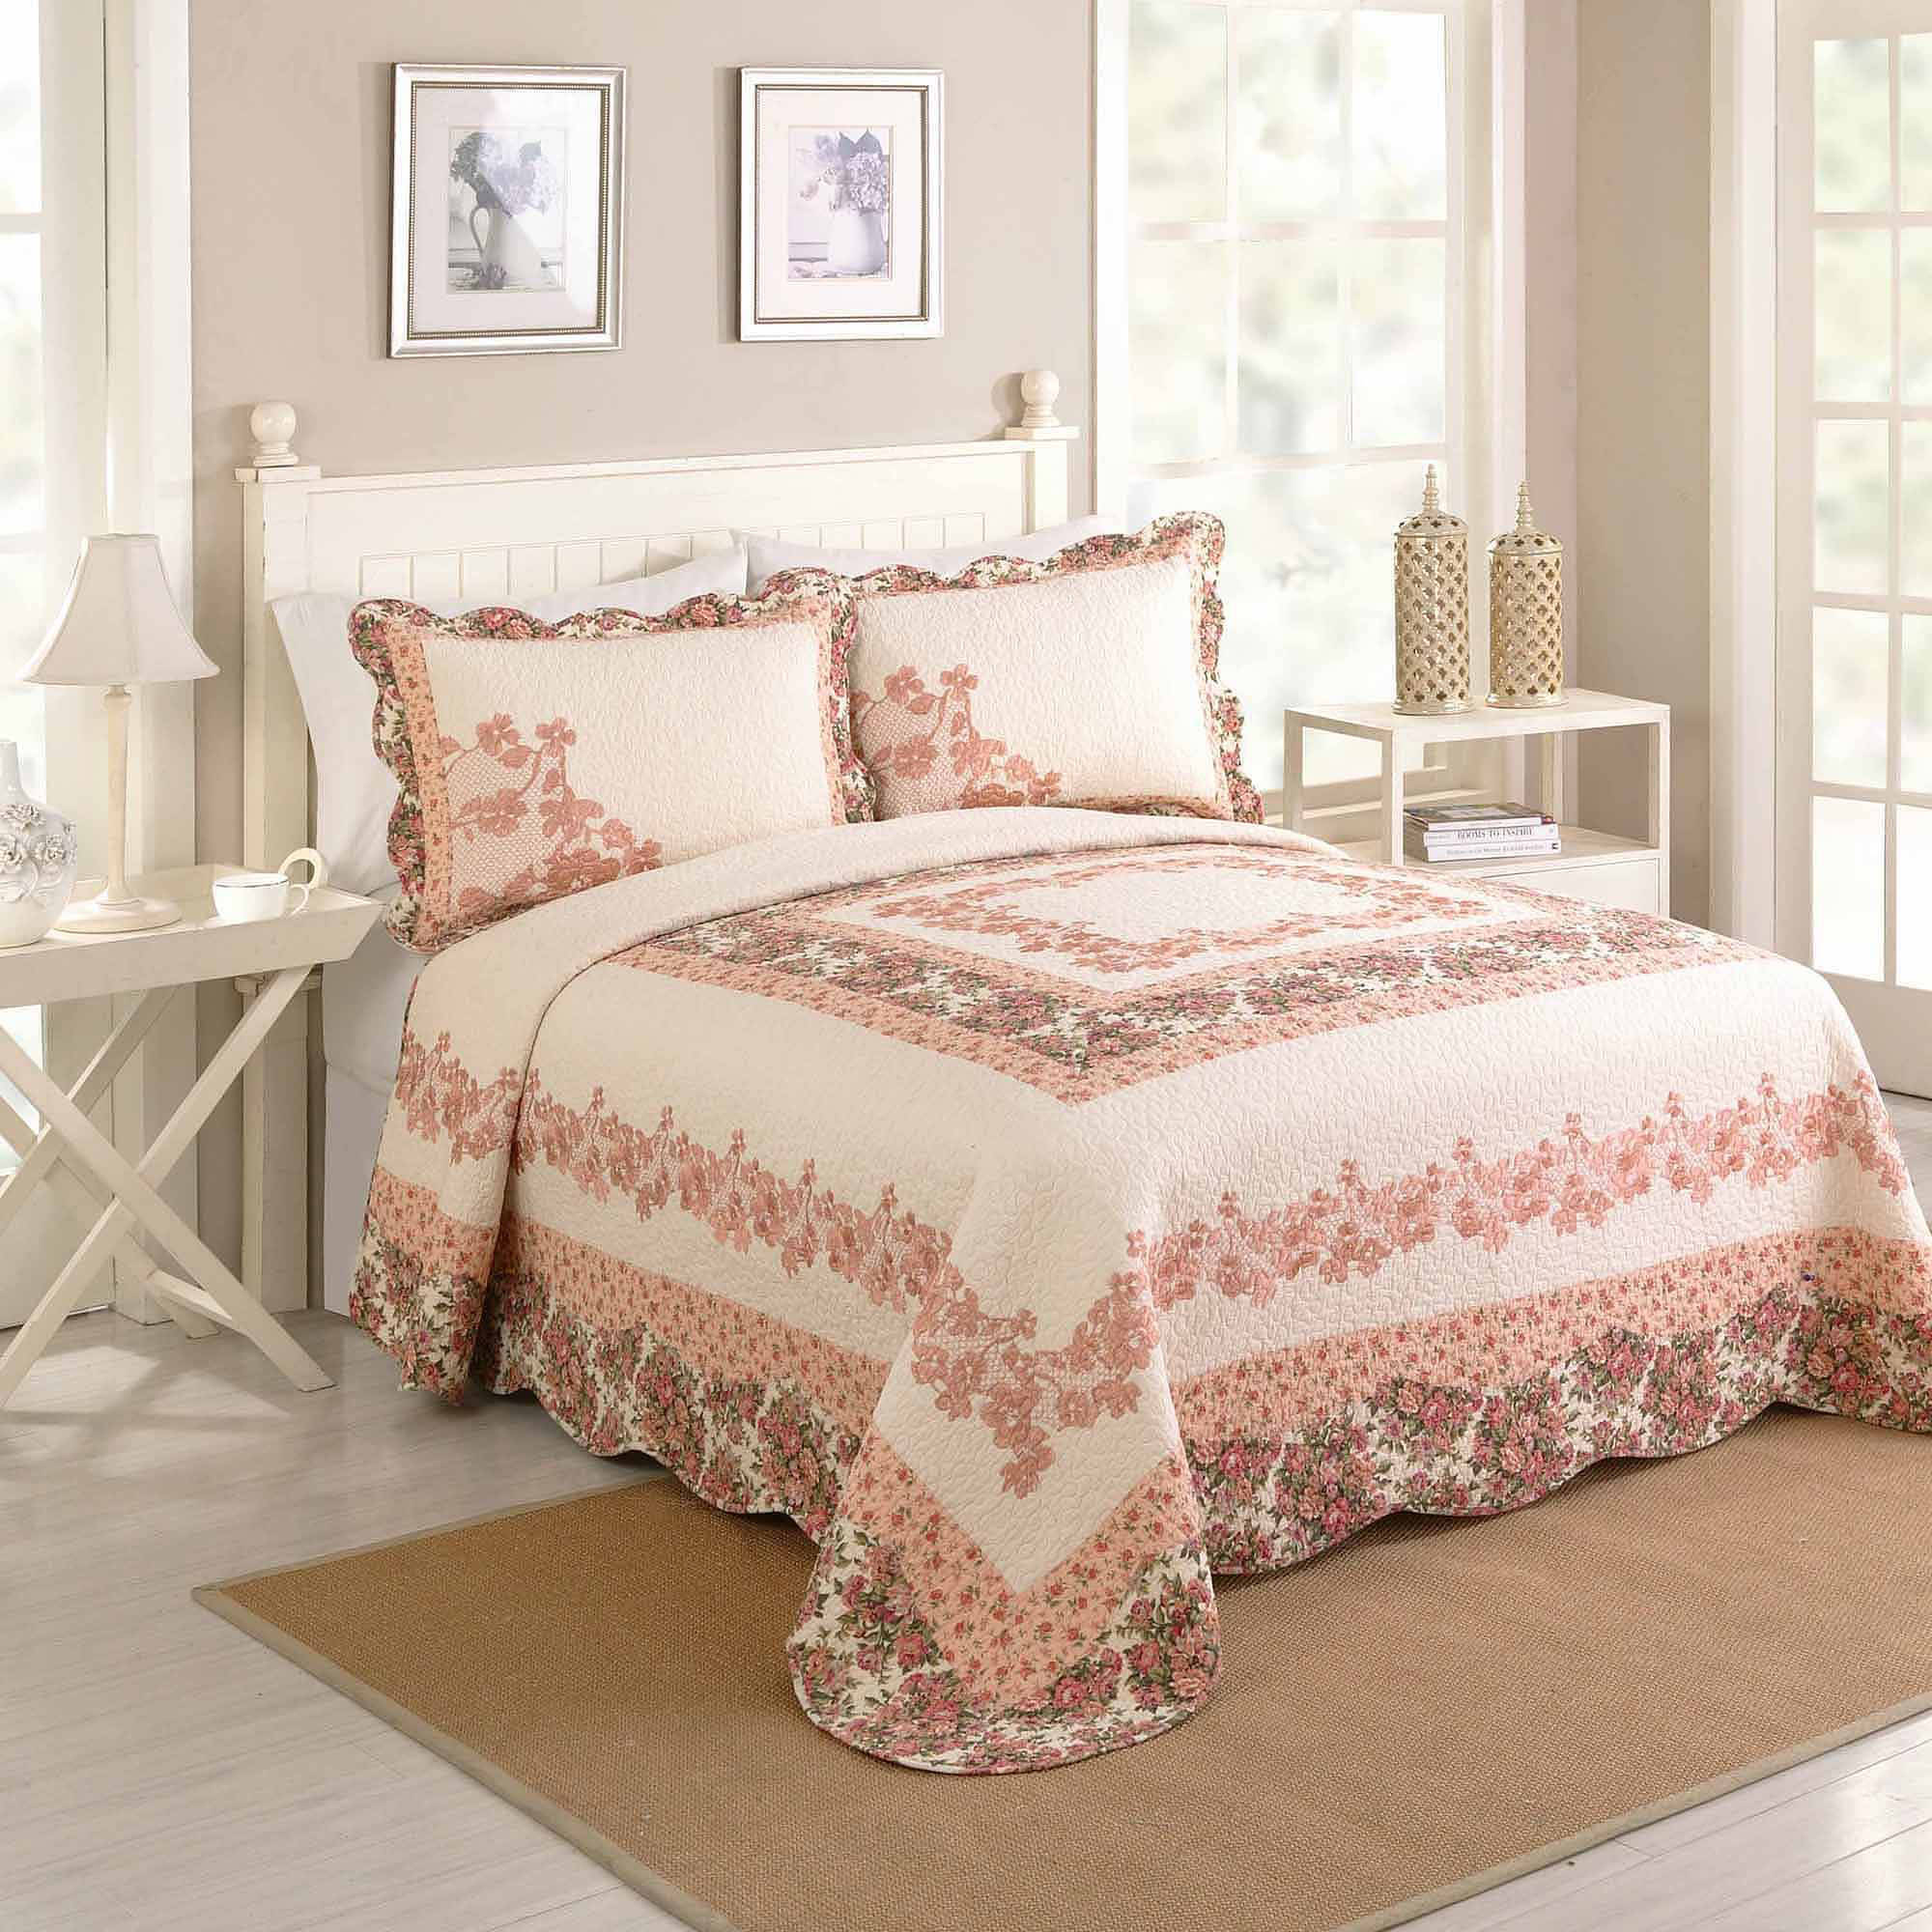 Better Homes and Gardens Shyla Bedspread, Peach